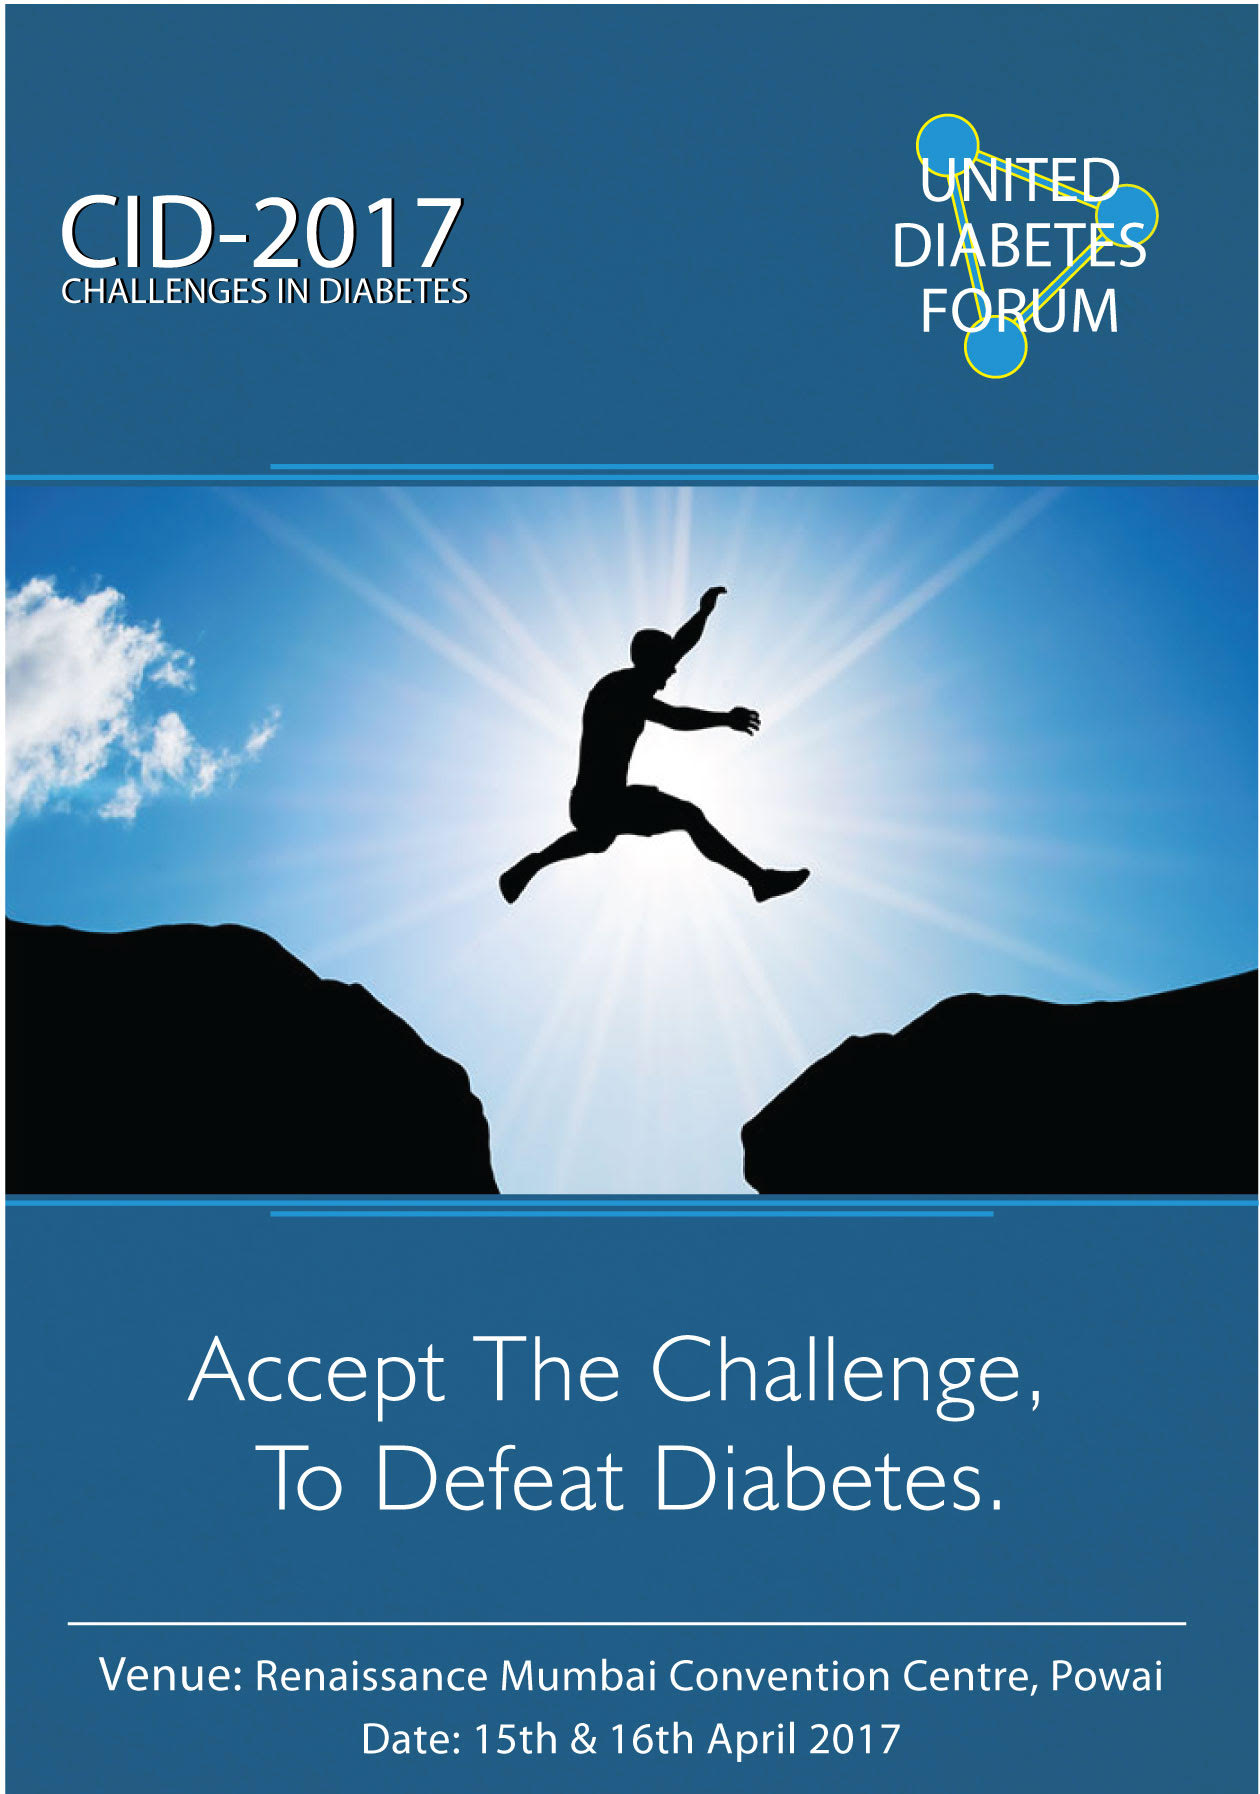 Challenges in Diabetes Event - 2017